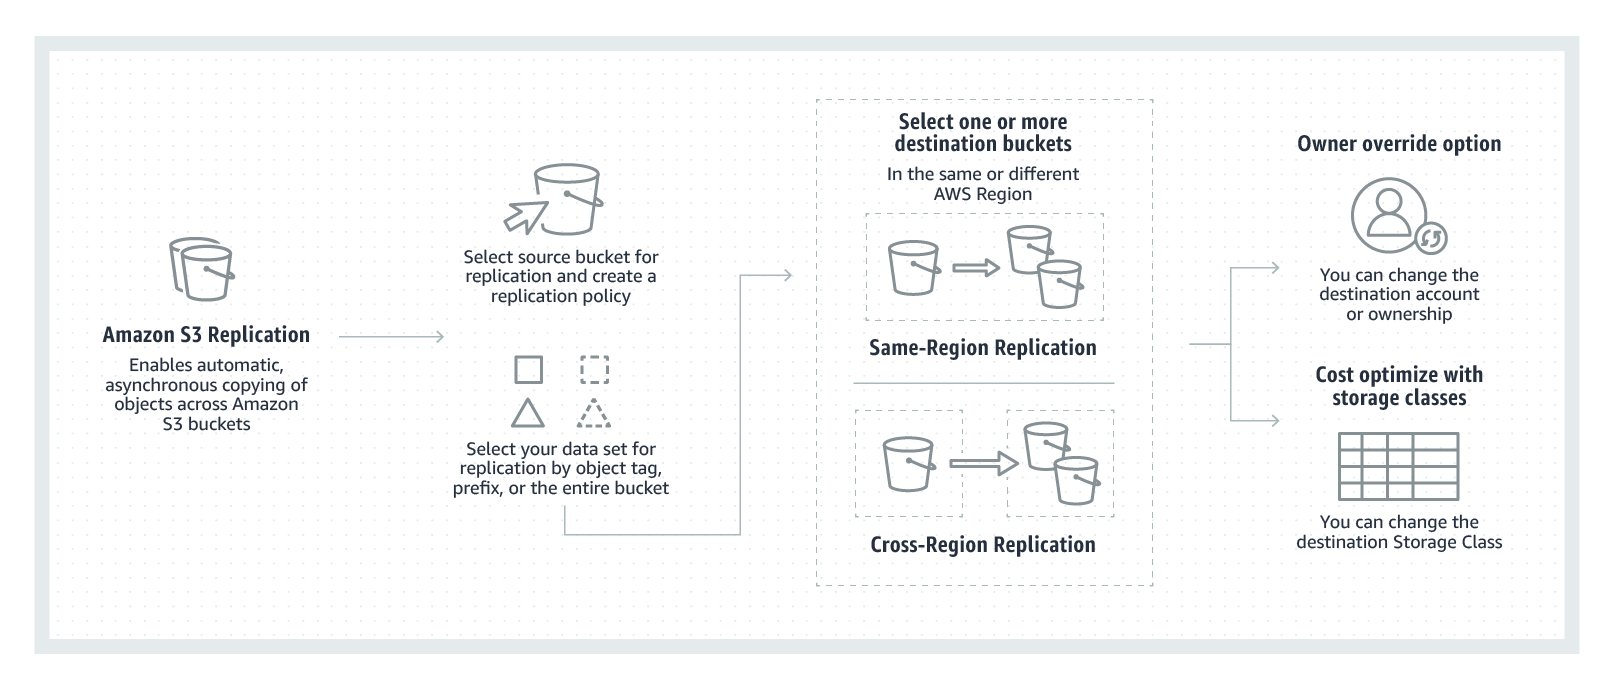 With Amazon S3 Replication, you can configure S3 to automatically replicate S3 objects across different AWS Regions